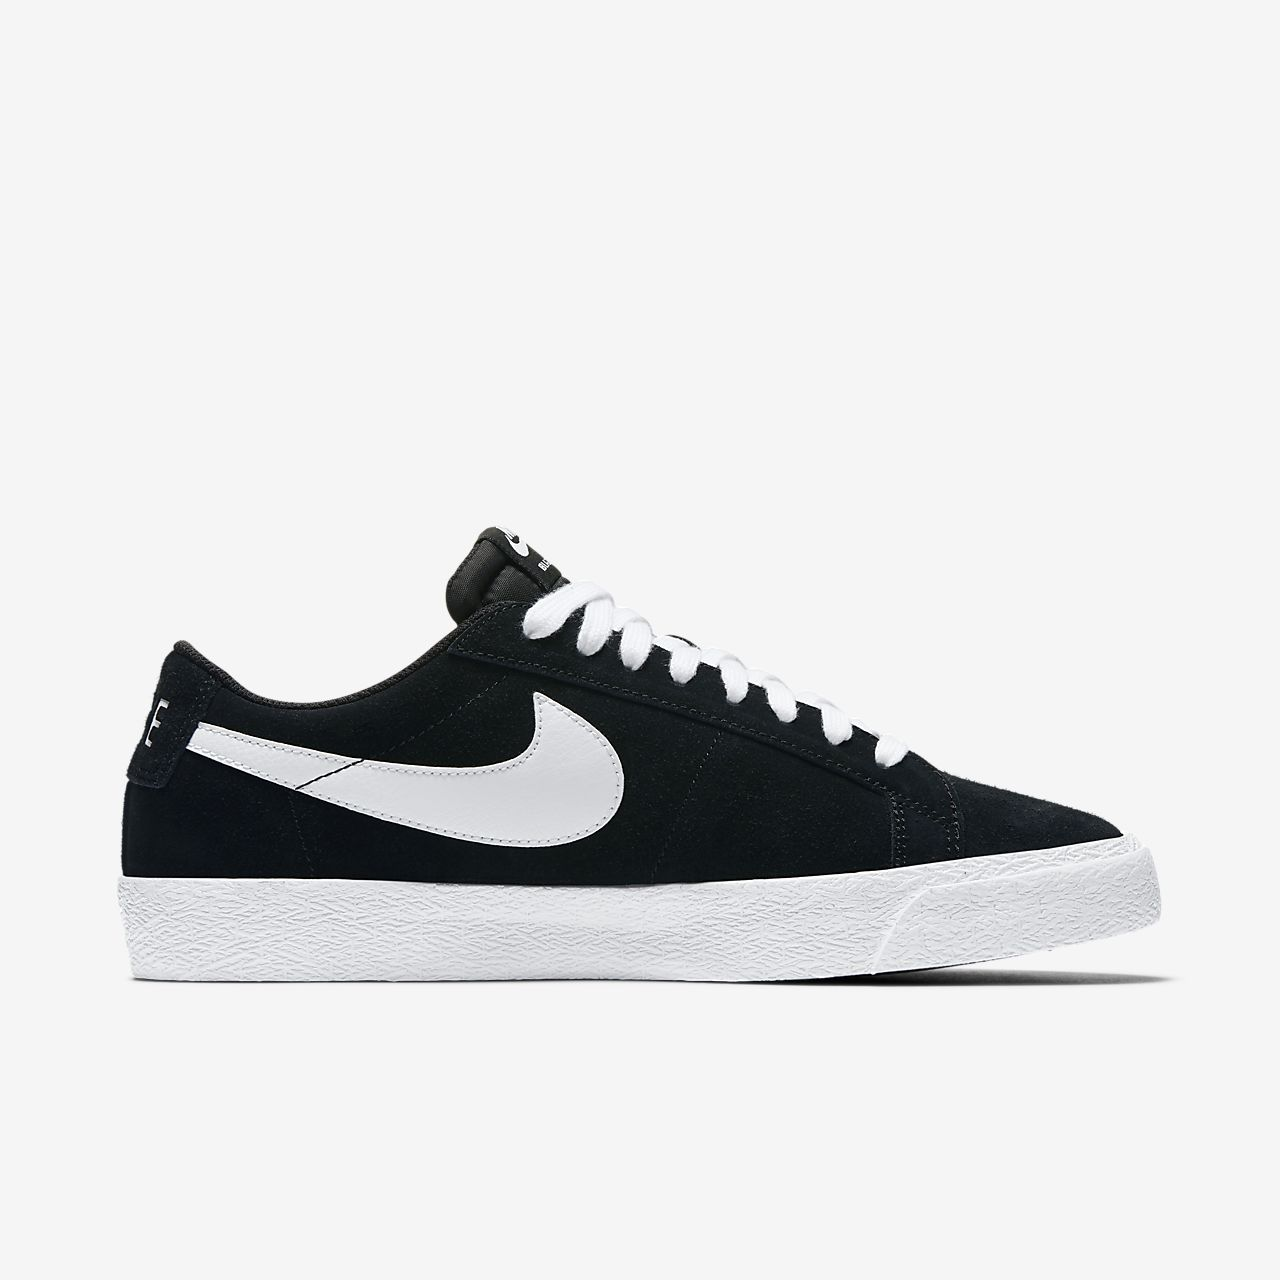 1d2c37701902d Nike SB Blazer Zoom Low Men s Skateboarding Shoe. Nike.com